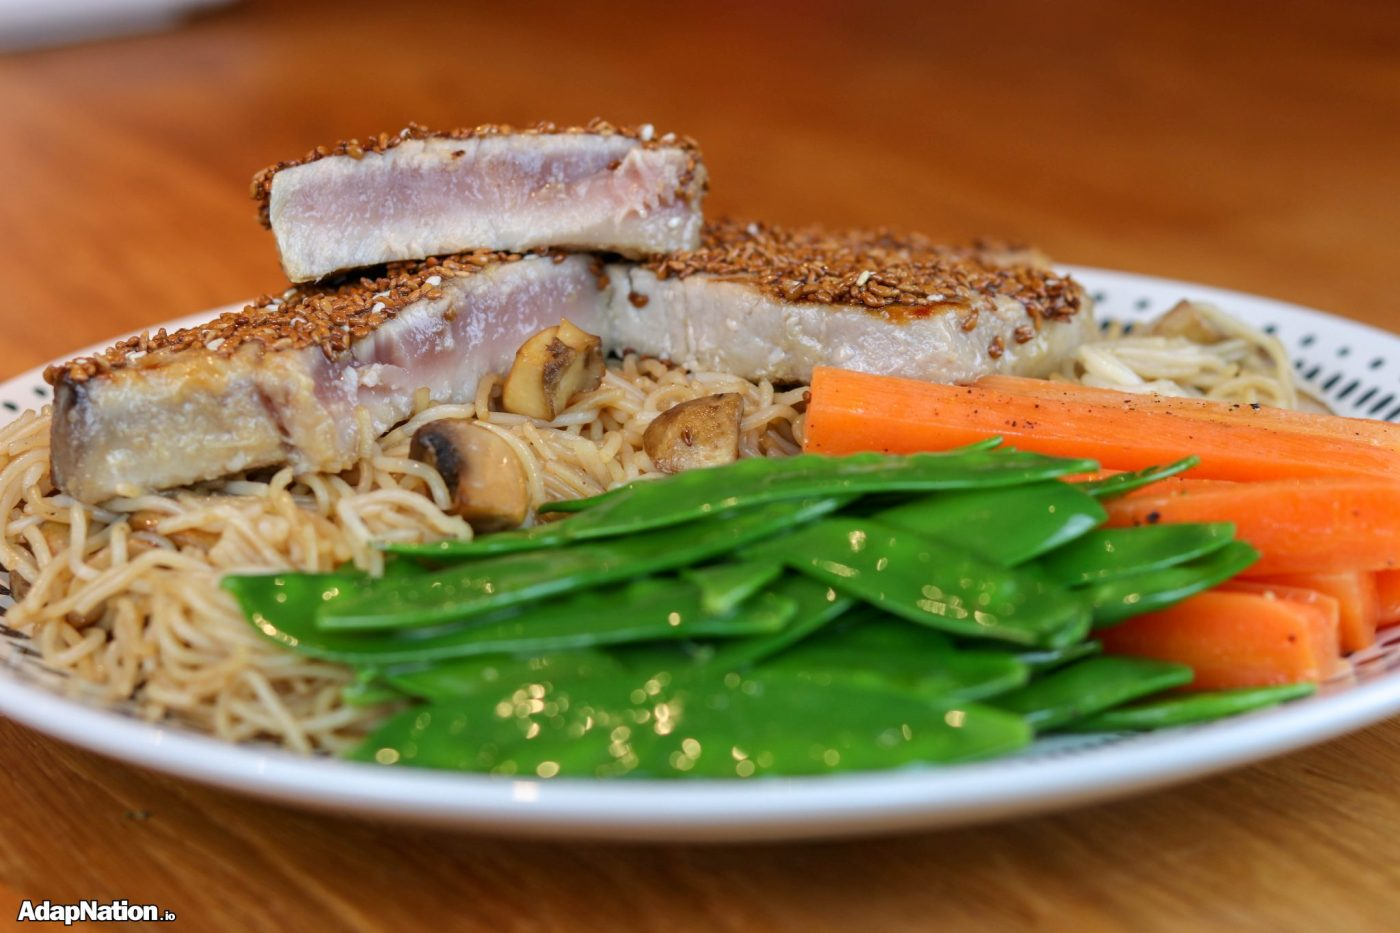 Honey & Sesame Seed Tuna Steaks